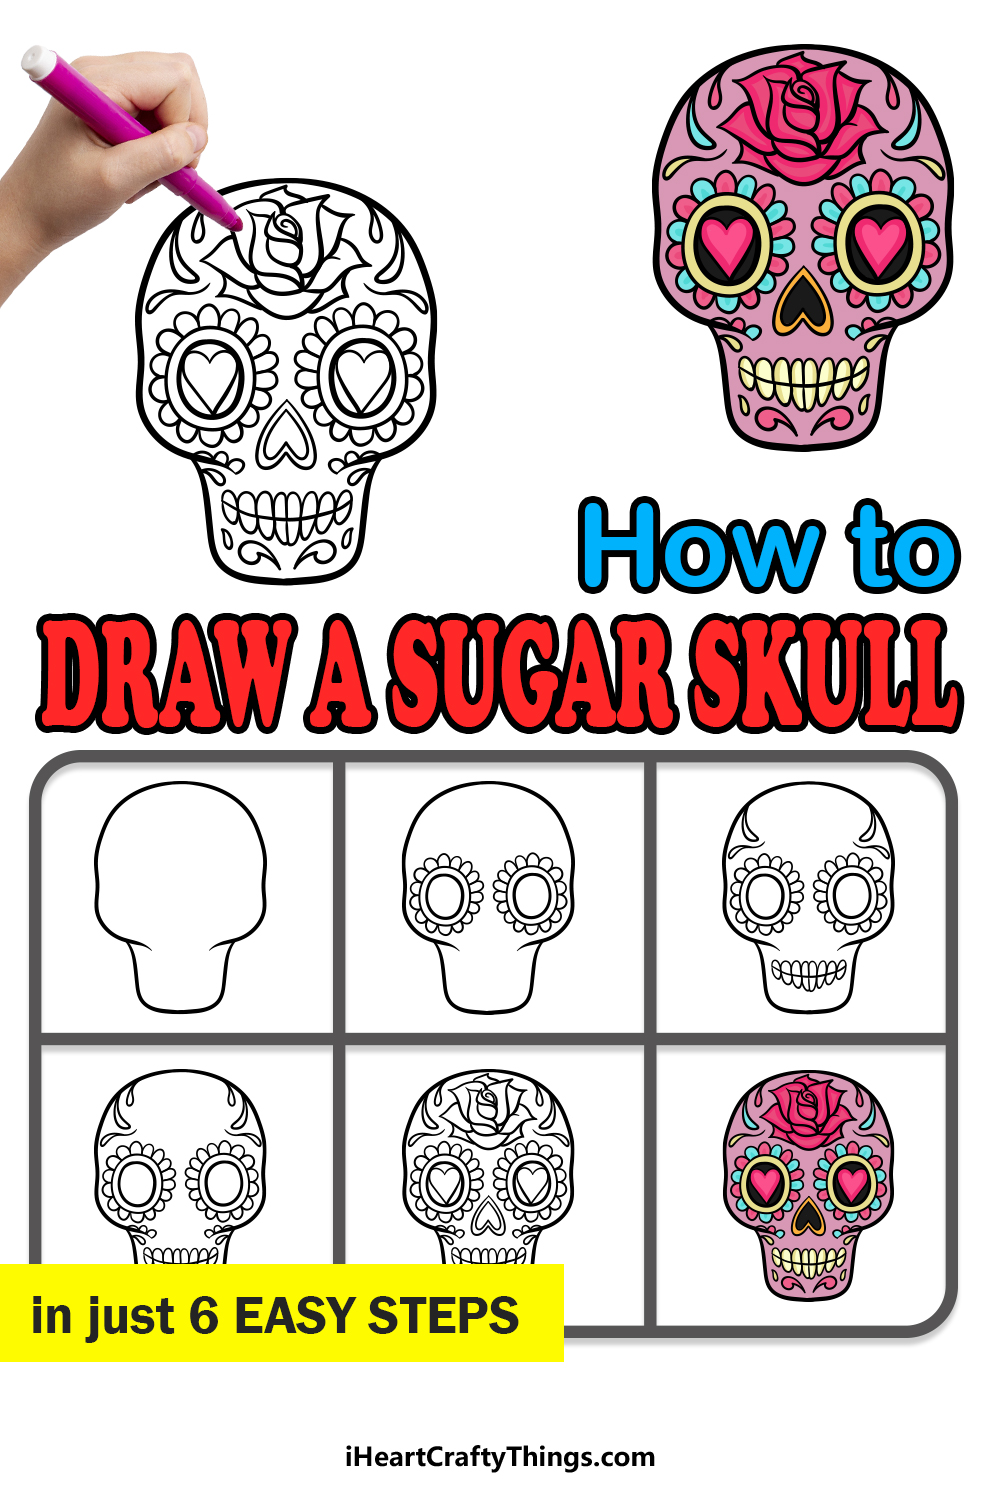 how to draw a sugar skull in 6 easy steps